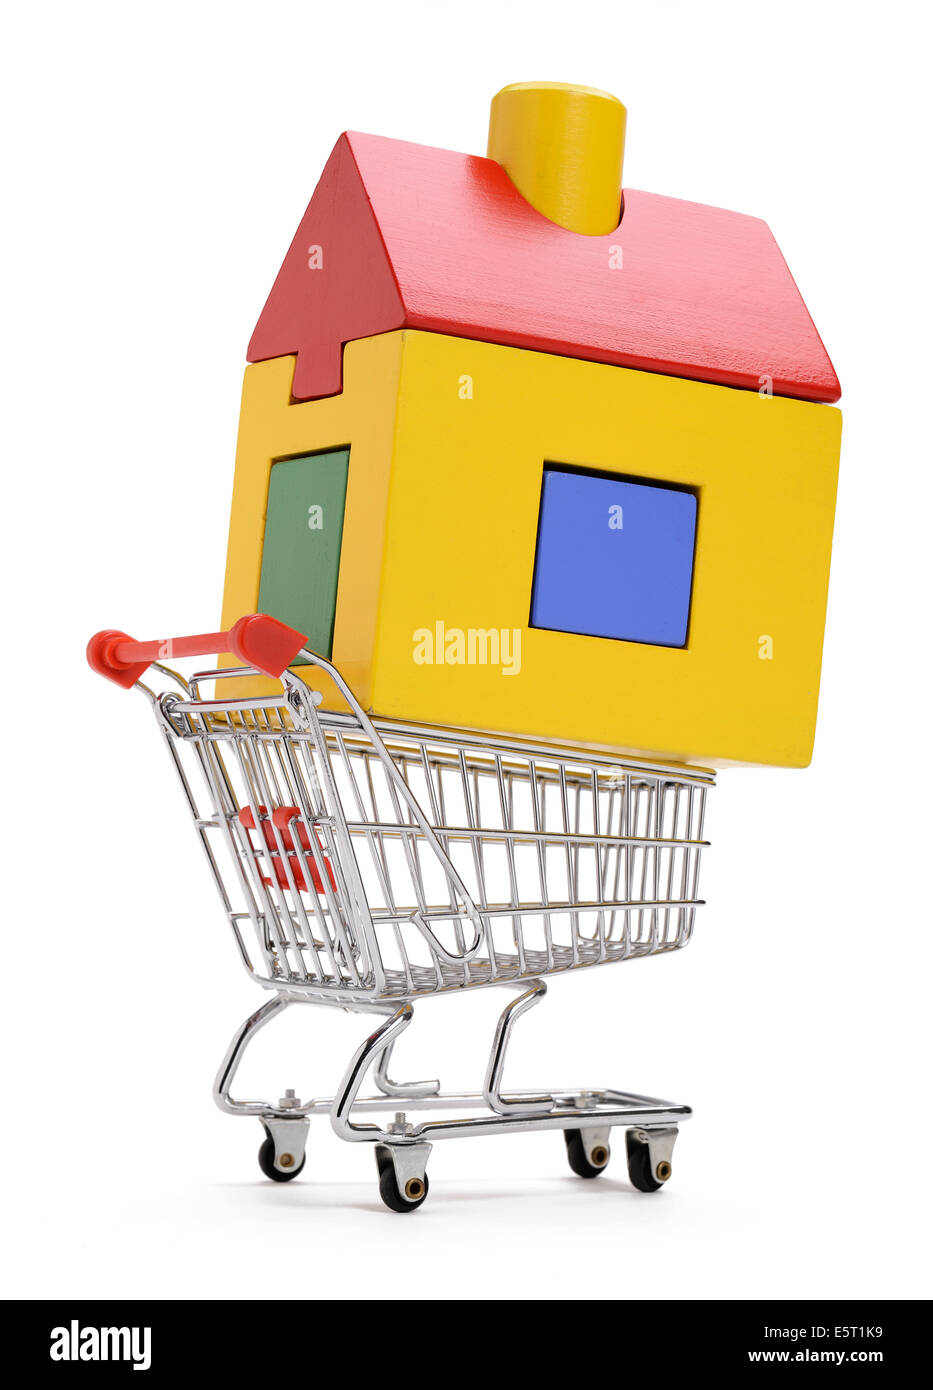 A toy wooden house in a shopping trolley - Stock Image